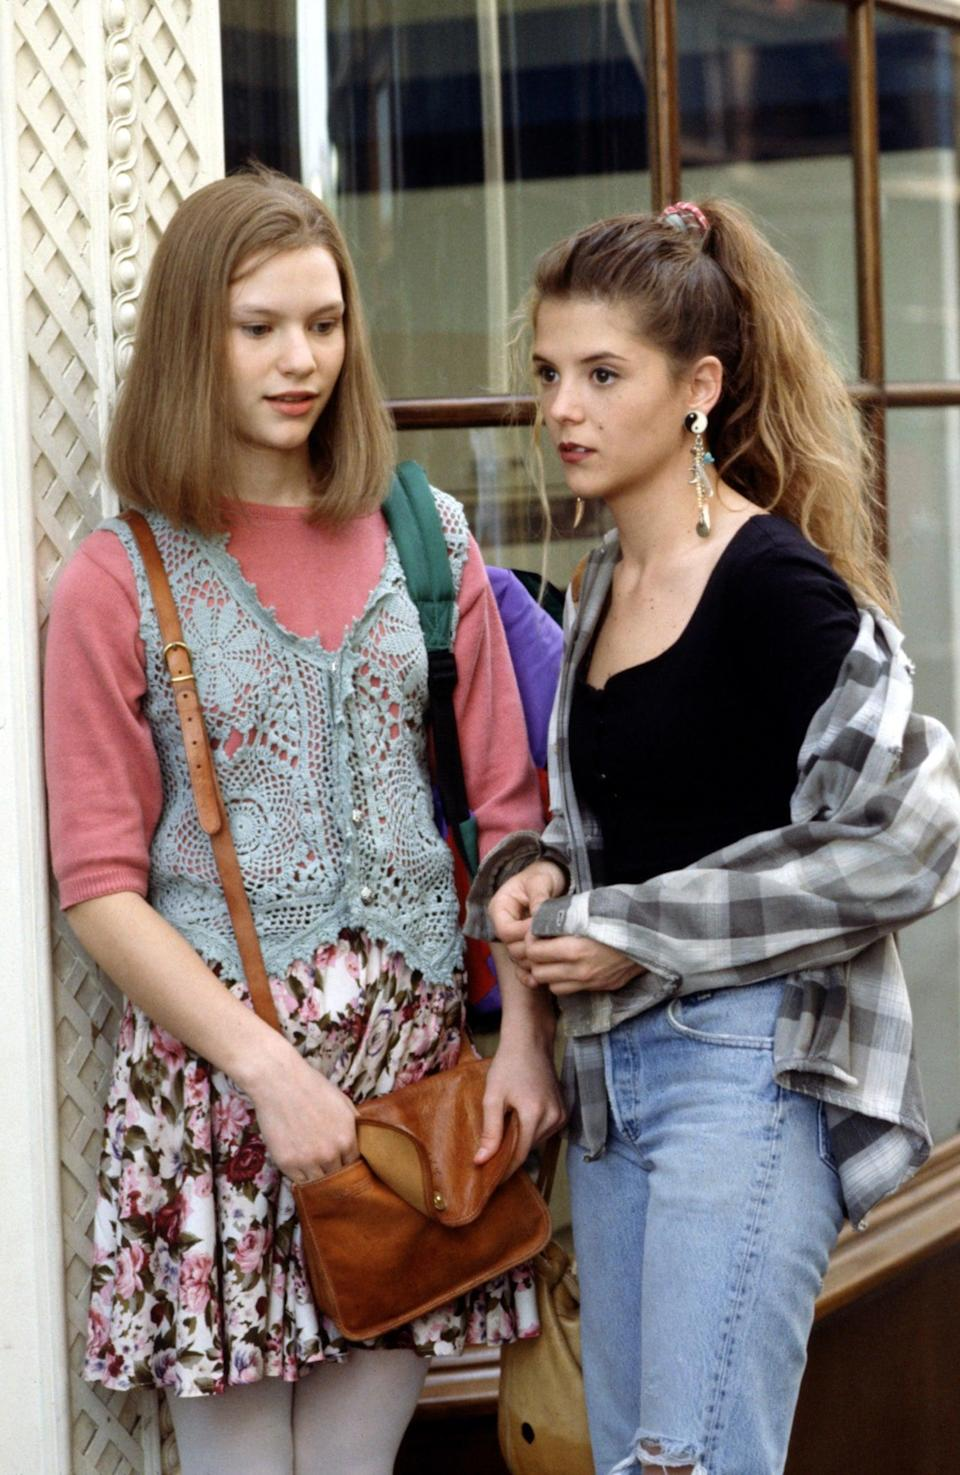 """<p>If you're going to be angsty teen Angela Chase from <b>My So-Called Life</b>, then you'll need lots of layers in pastels, florals, plaid, and crochet plus oversize striped sweaters. Bonus points if you <a href=""""https://www.popsugar.com/My-So-Called-Life-Quotes-22638410"""" class=""""link rapid-noclick-resp"""" rel=""""nofollow noopener"""" target=""""_blank"""" data-ylk=""""slk:memorize some of her best quotes"""">memorize some of her best quotes</a>.</p>"""